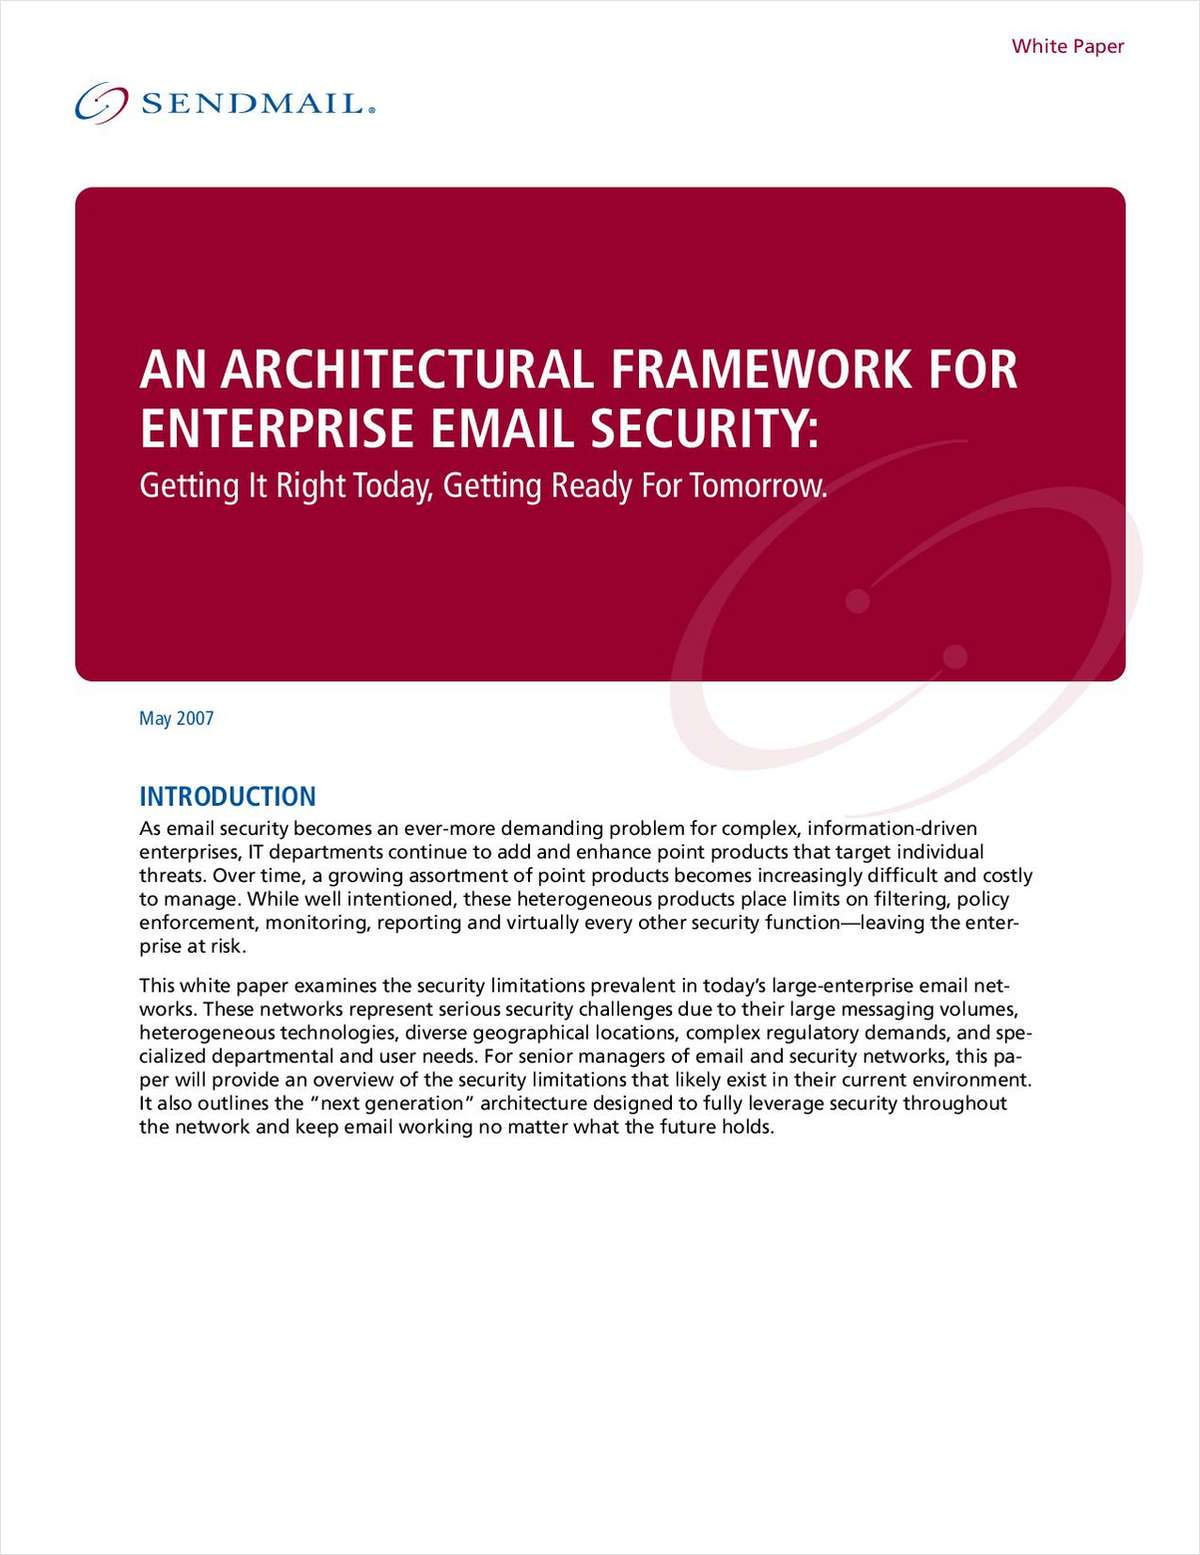 An Architectural Framework for Enterprise Email Security